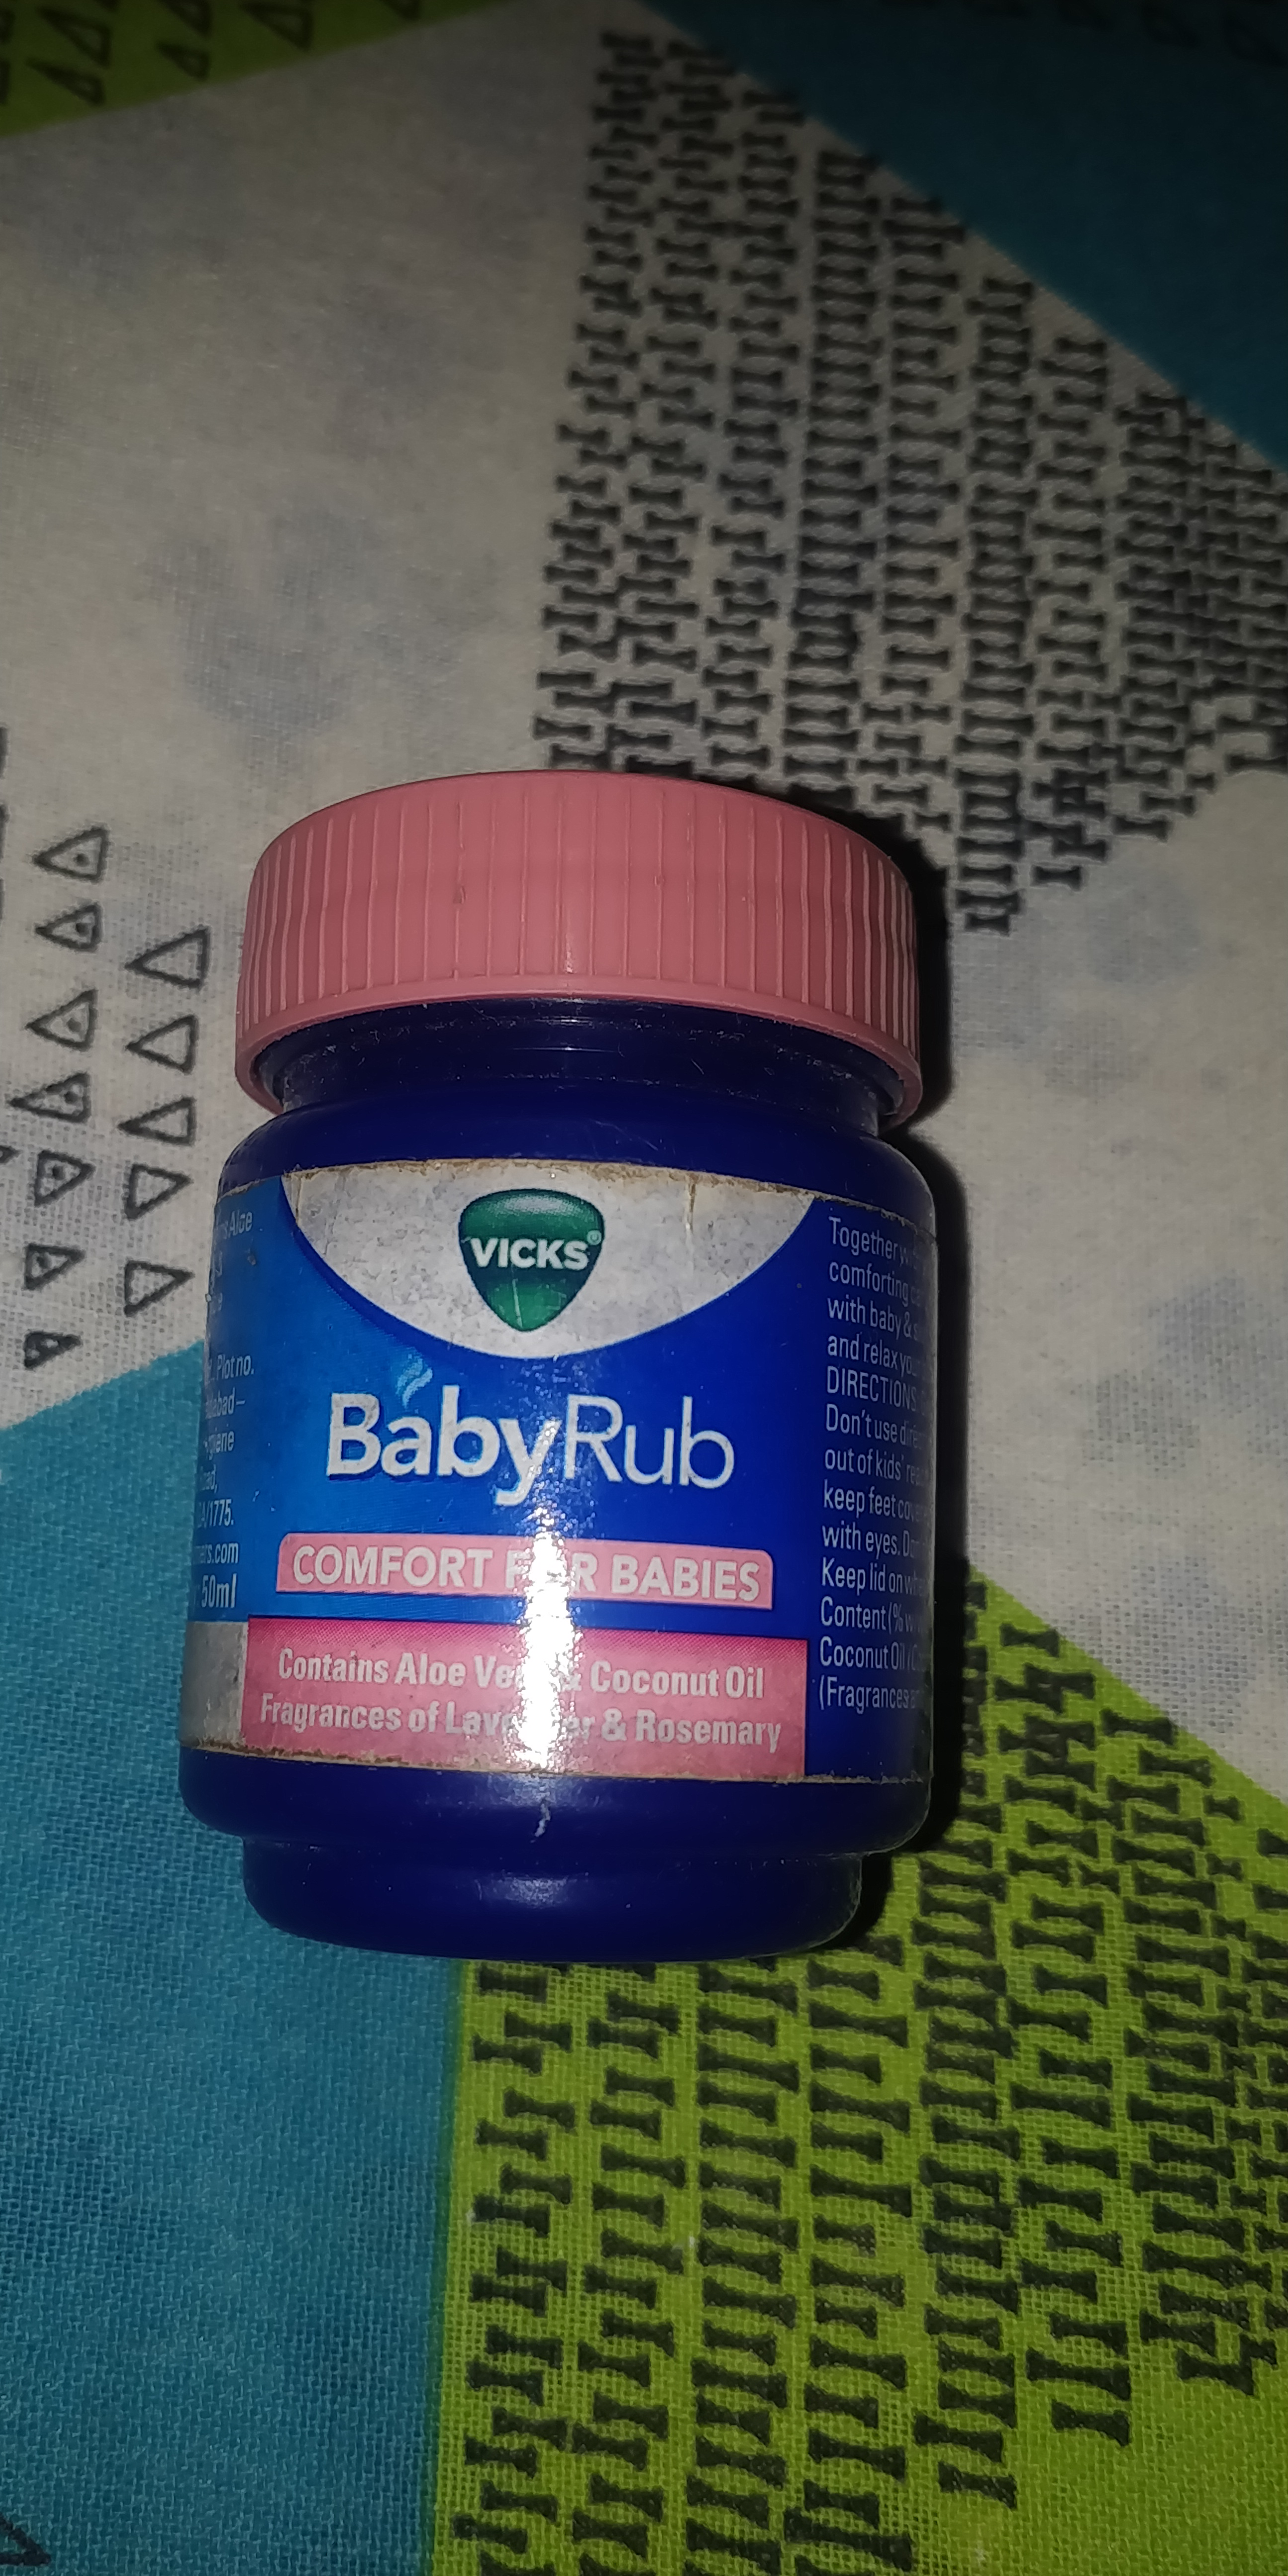 Vicks Baby Rub Soothing Ointment-Gentle and very safe-By riddzijl